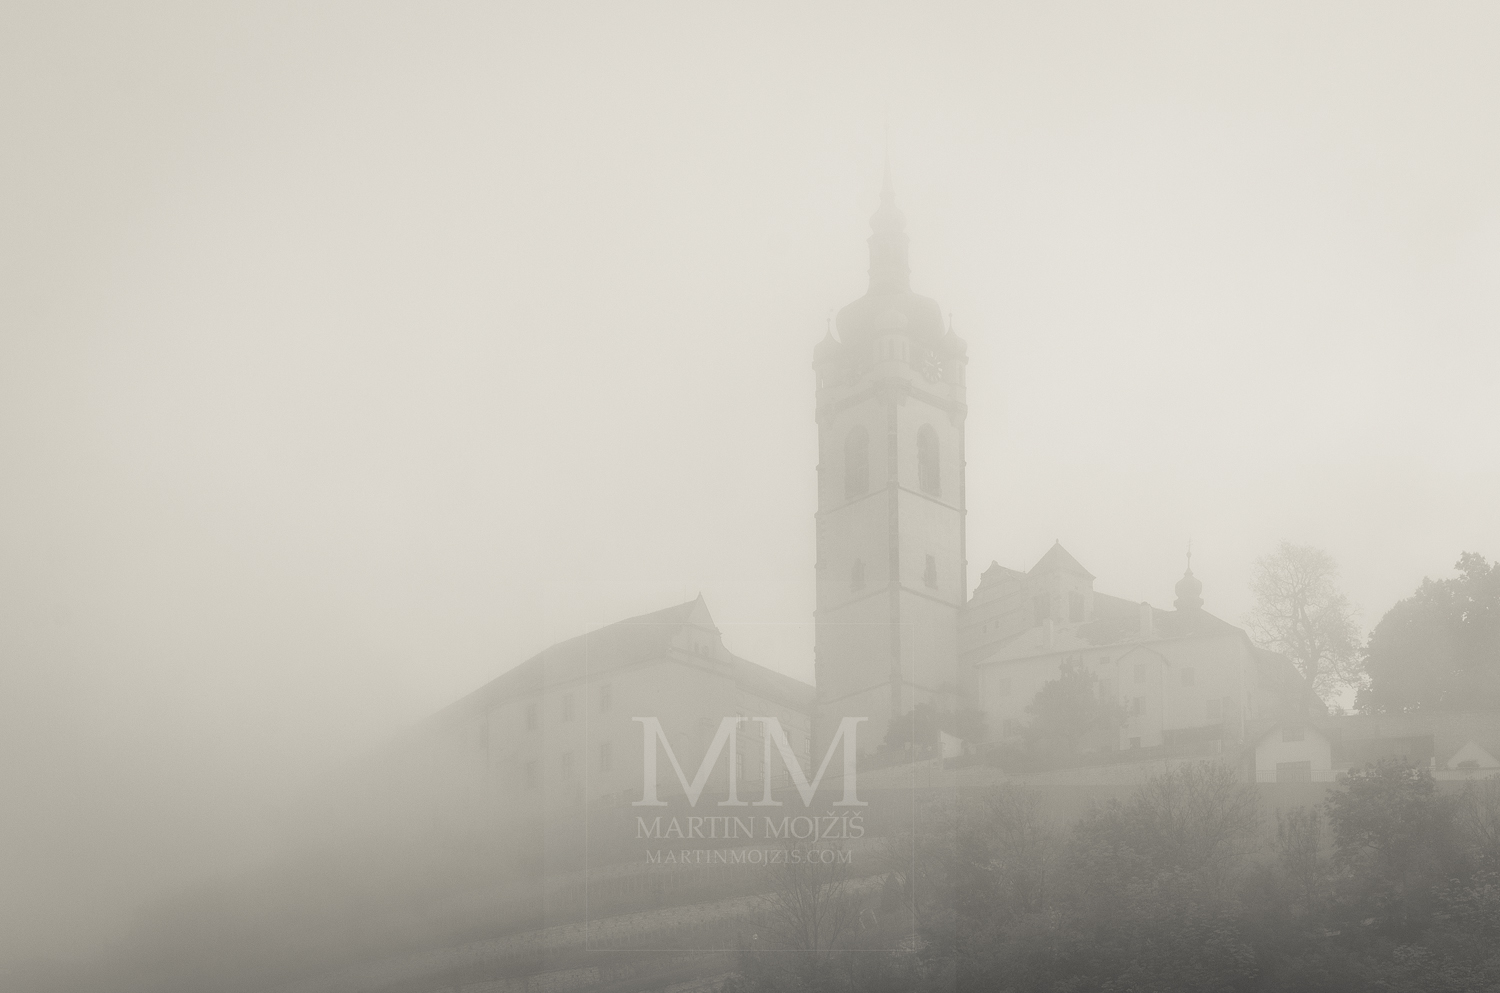 Melnik Chateau and Church in the fog. Photograph © Martin Mojzis.